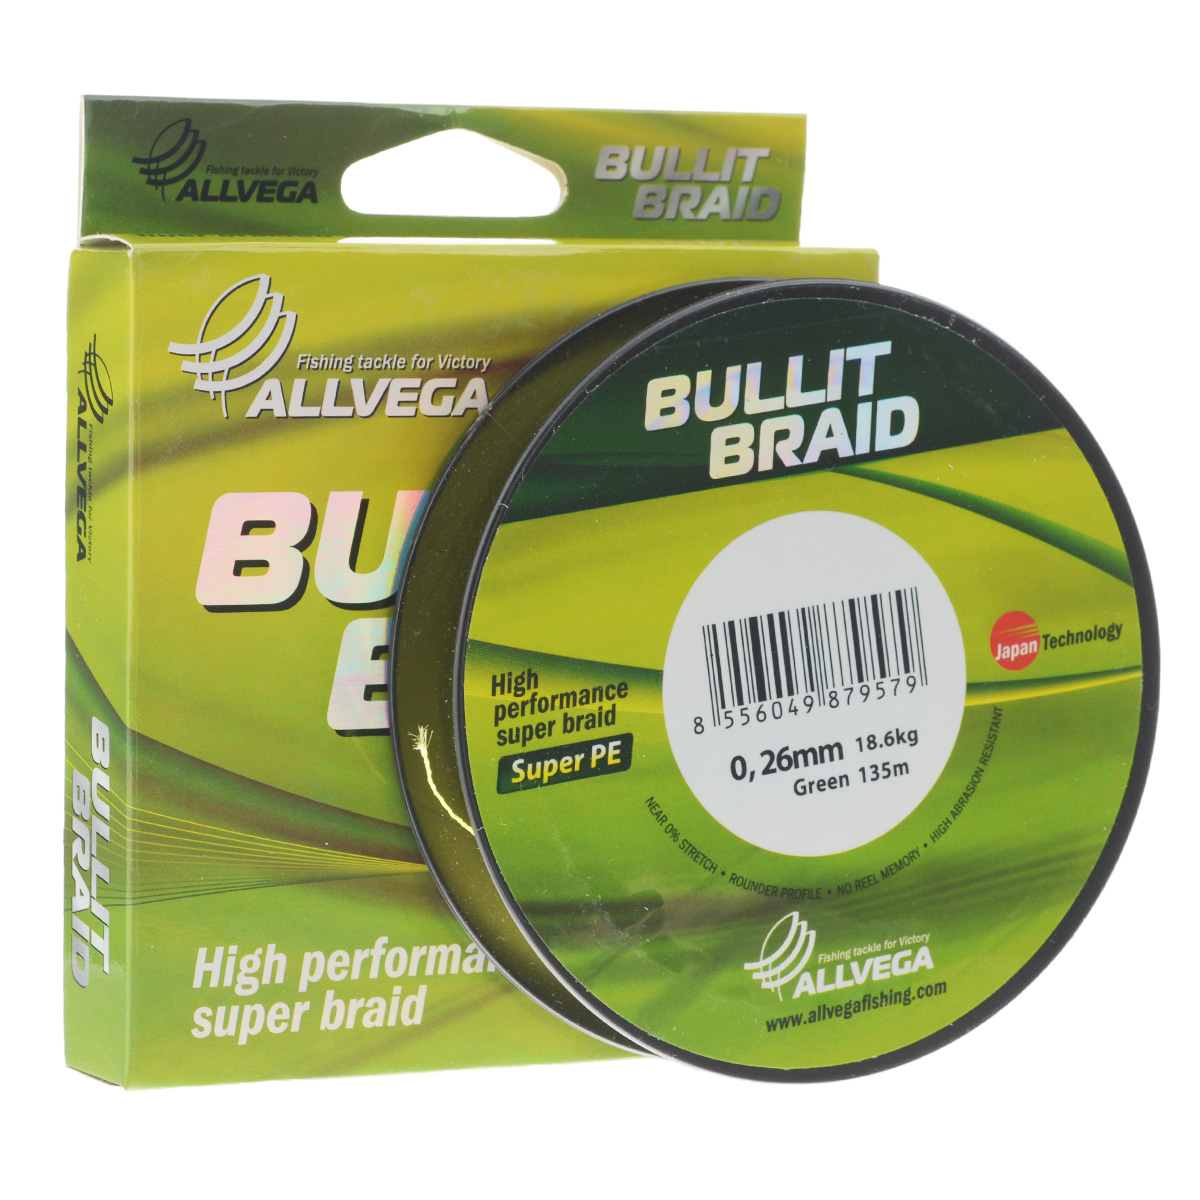 Леска плетеная Allvega Bullit Braid, цвет: ярко-желтый, 135 м, 0,26 мм, 18,6 кг